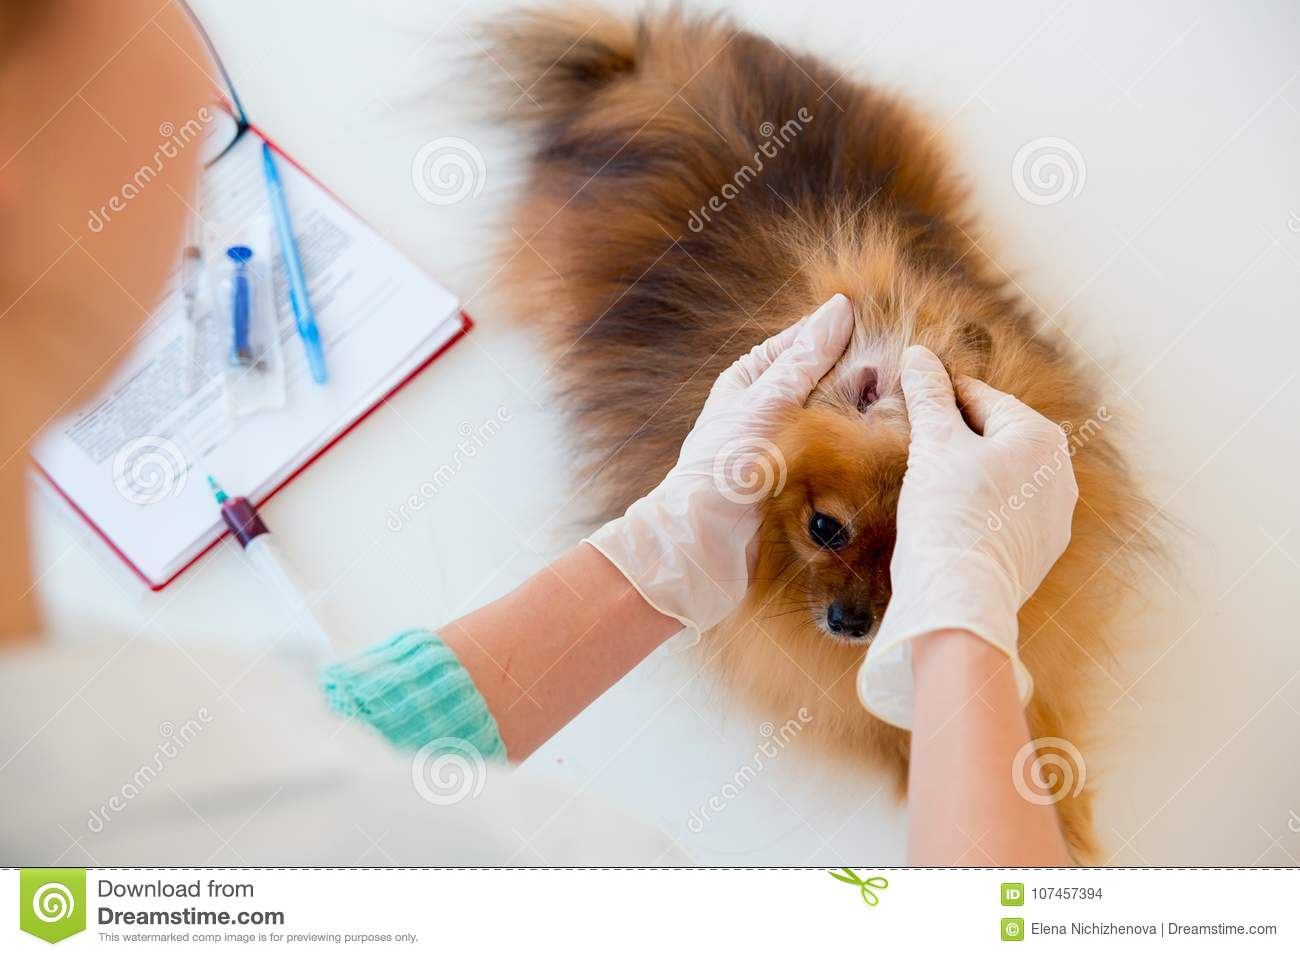 Dog with a vet